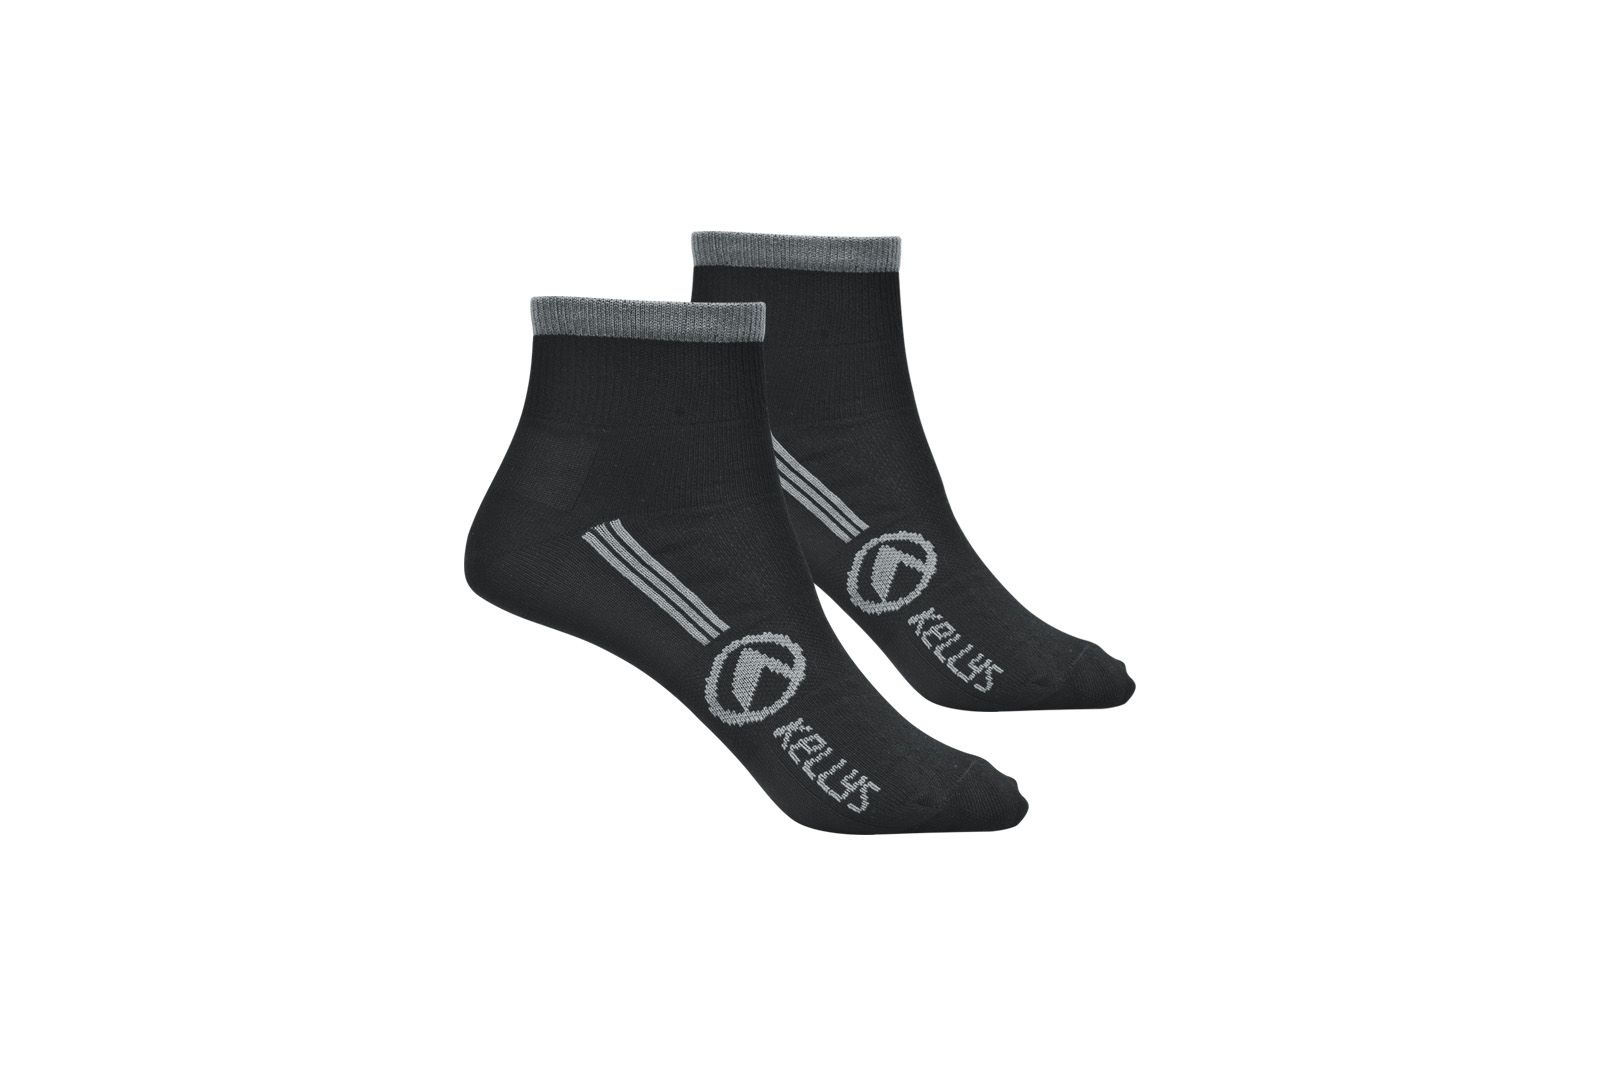 Socks KELLYS SPORT black 38-42 - bagier Sports GmbH